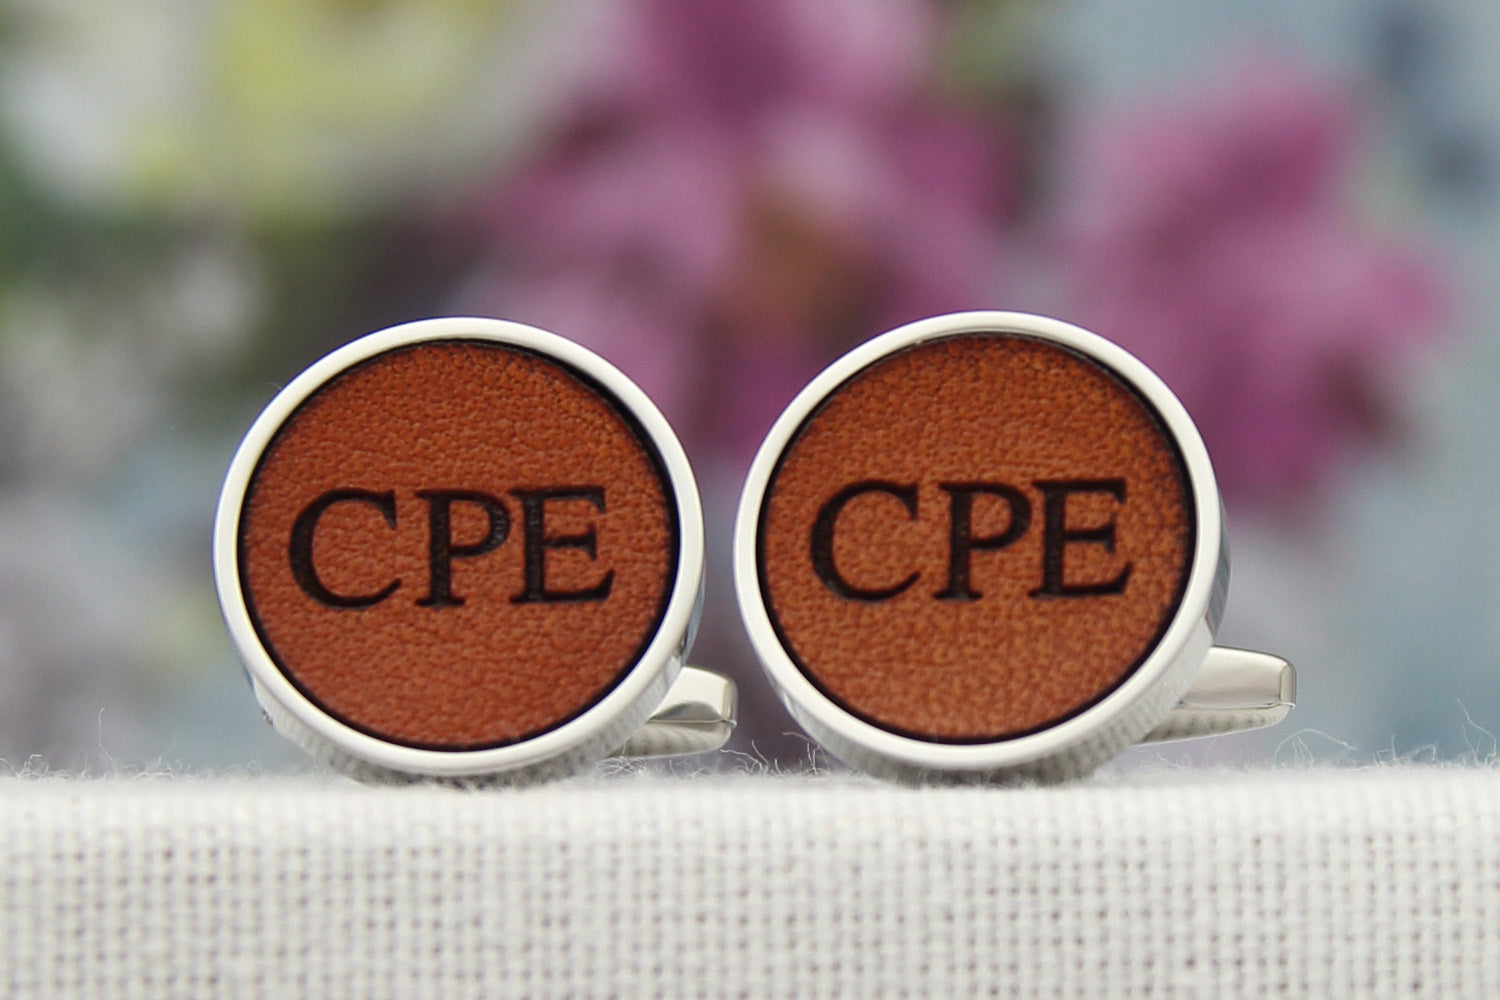 Personalised gift for him, leather cufflinks with his initials